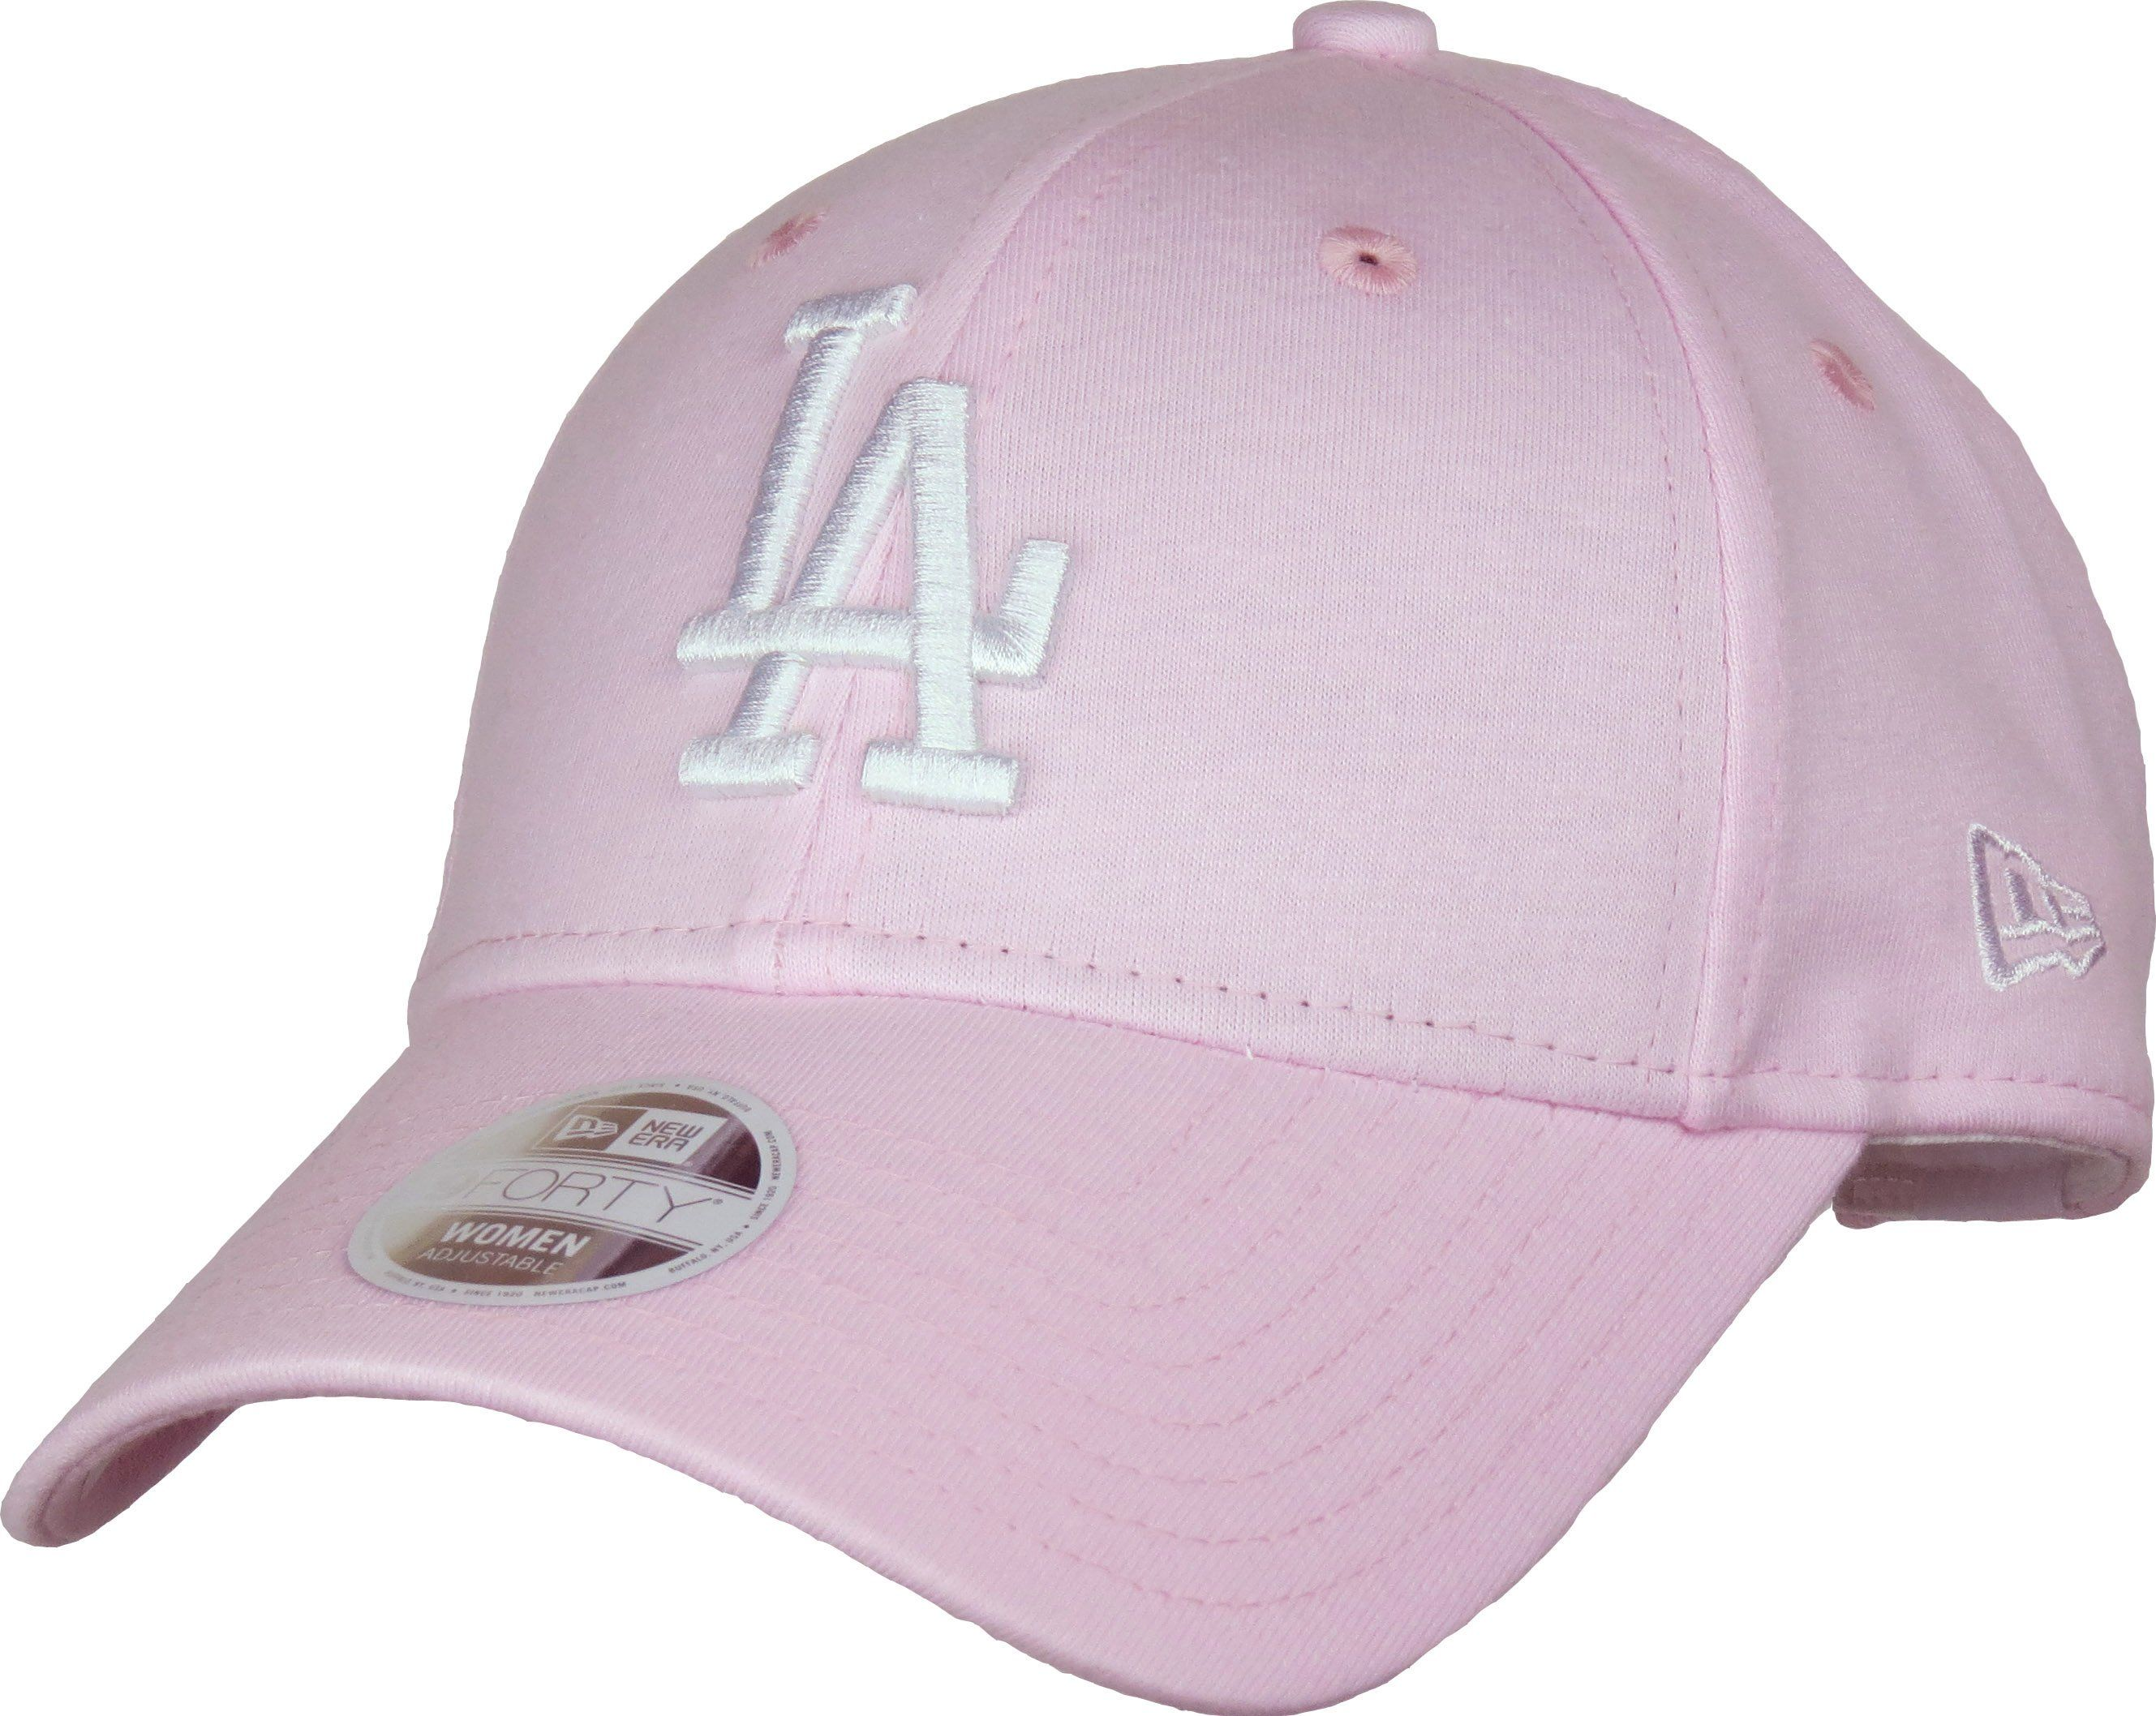 a840e15b98d New Era 9Forty Womens Jersey Baseball Cap. Light Pink